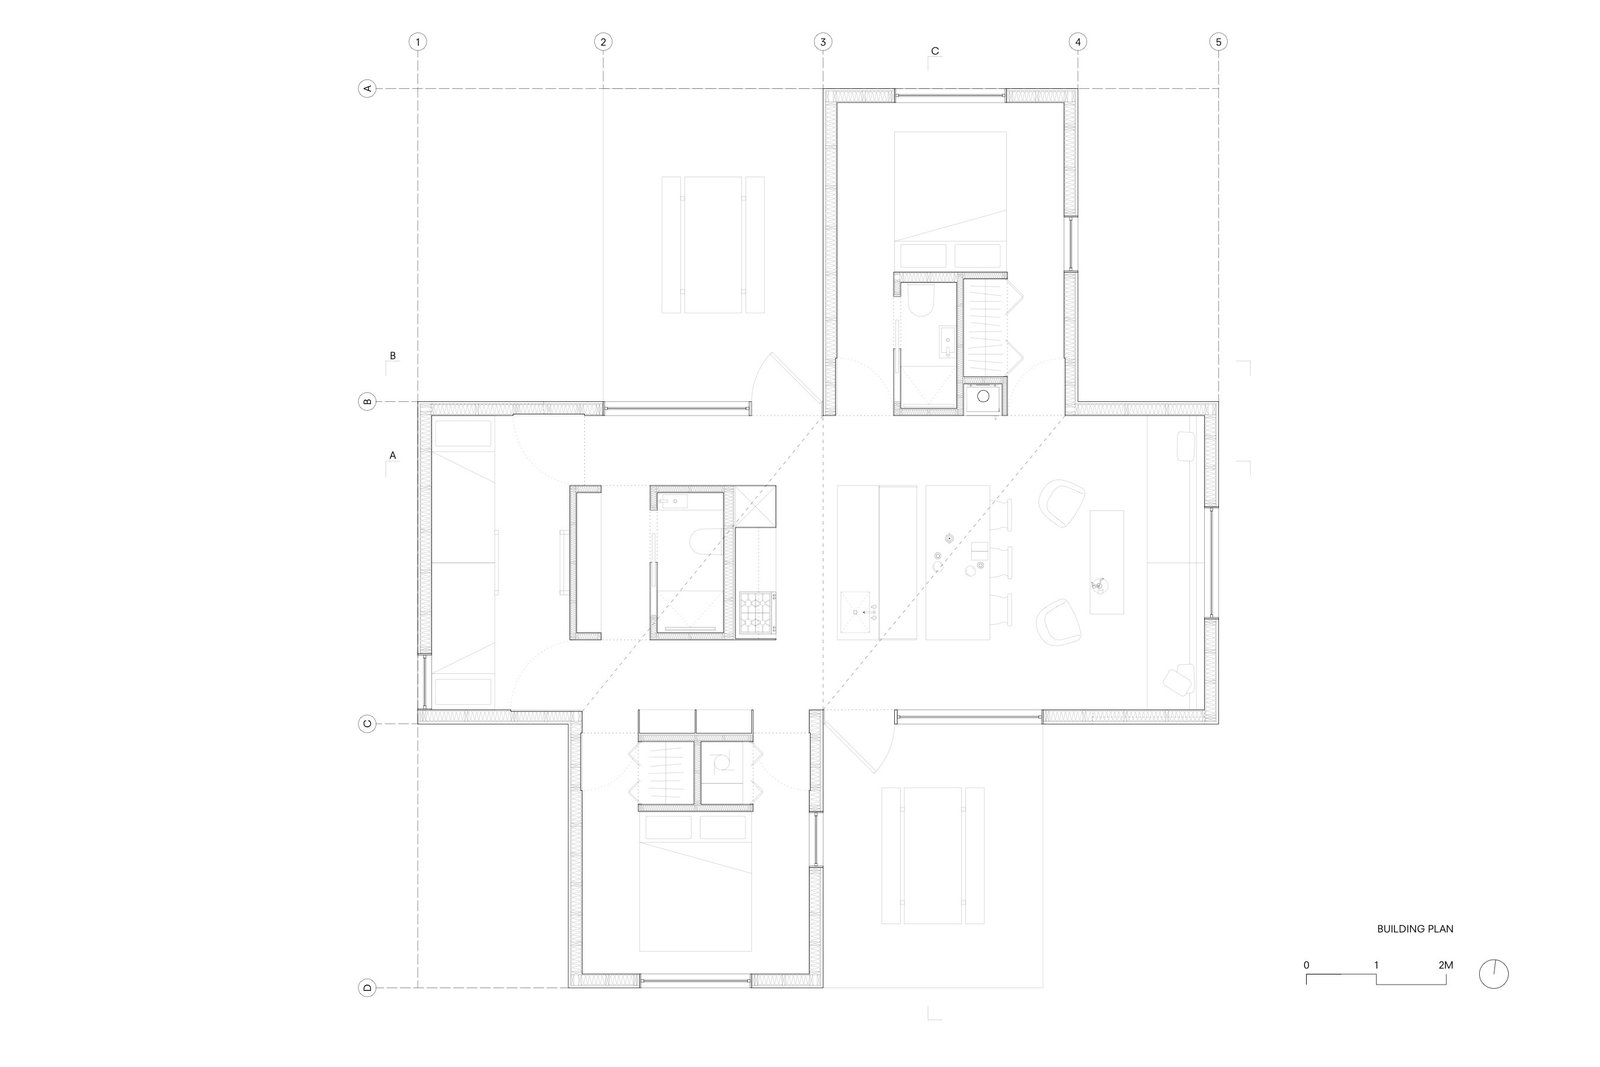 Mylla Hytte main house floor plan  Photo 13 of 14 in A Pinwheel-Shaped Cabin in Norway Is a Fresh Take on the Traditional Hytte